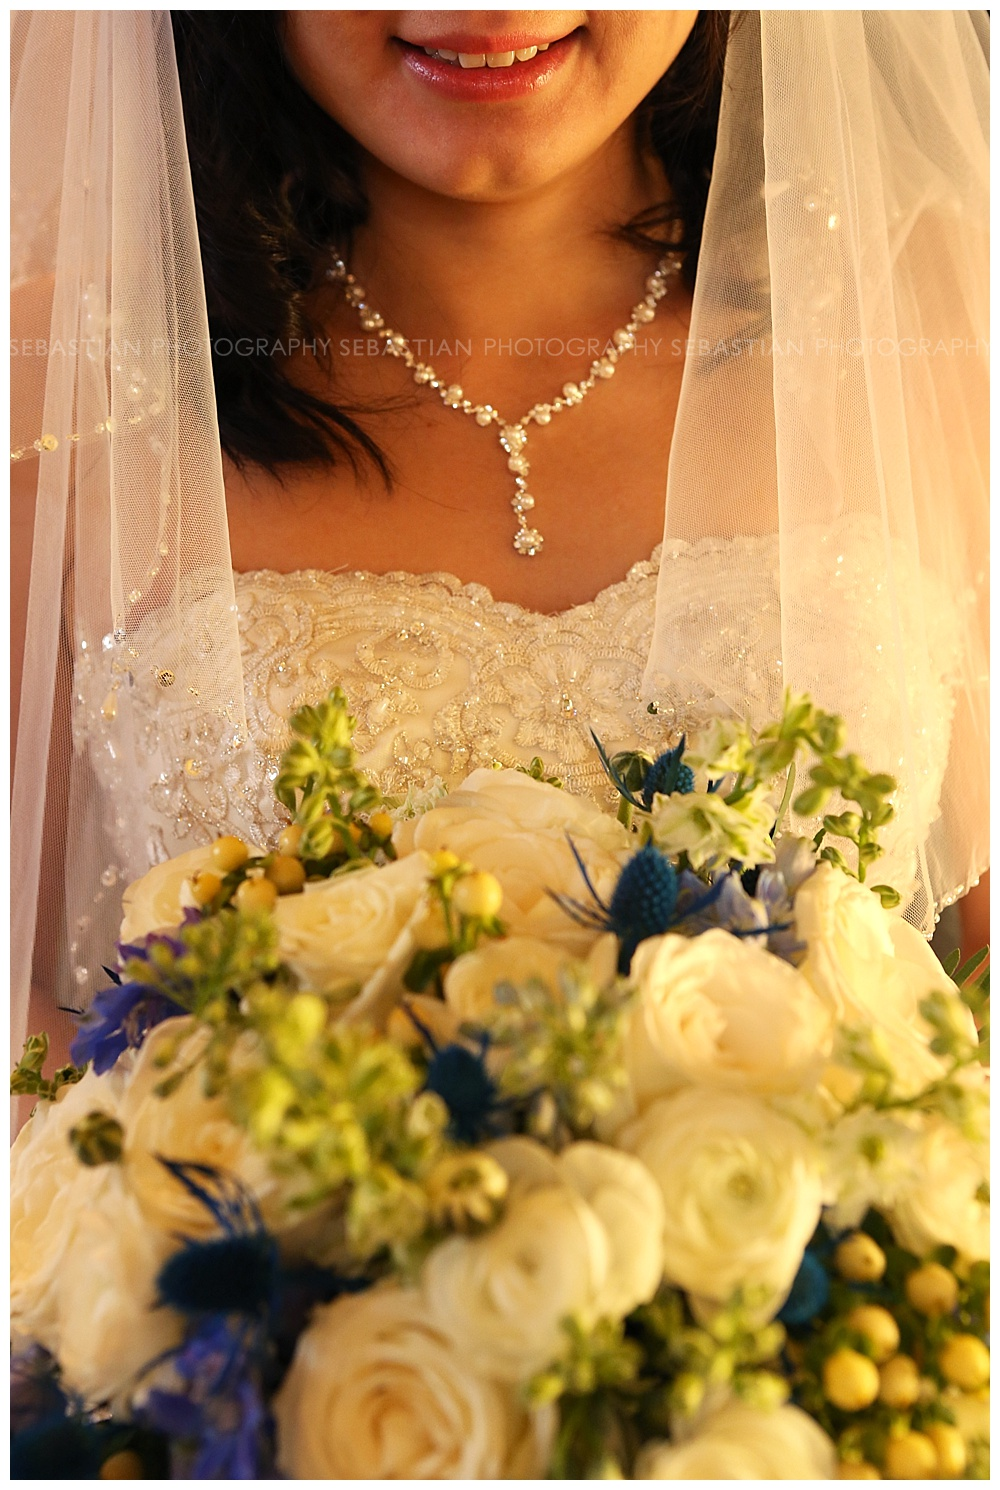 Sebastian_Photography_Wedding_StClements_CT02.jpg